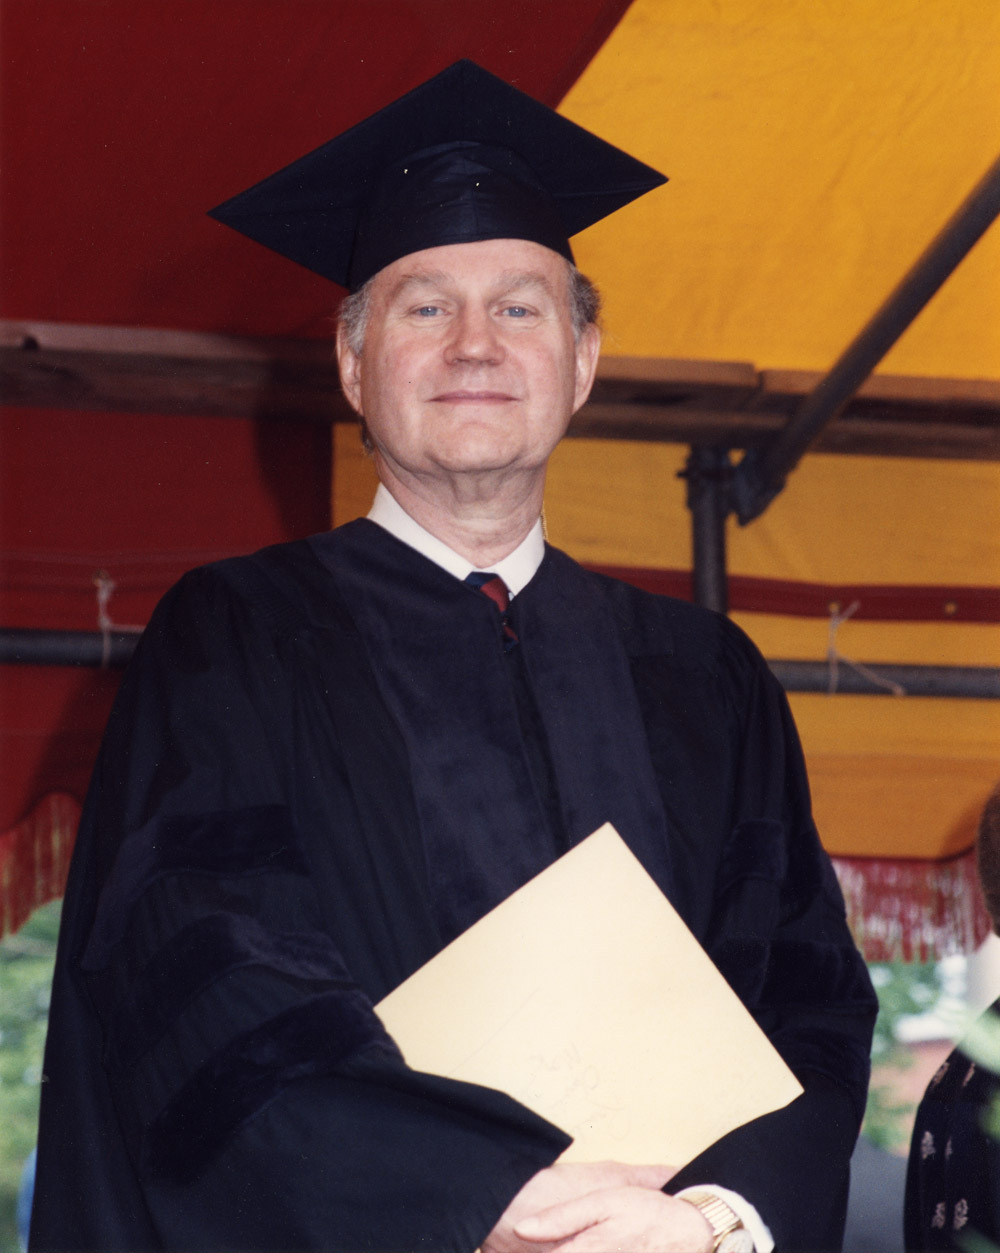 Romulus Linney receiving an honorary degree from Oberlin College